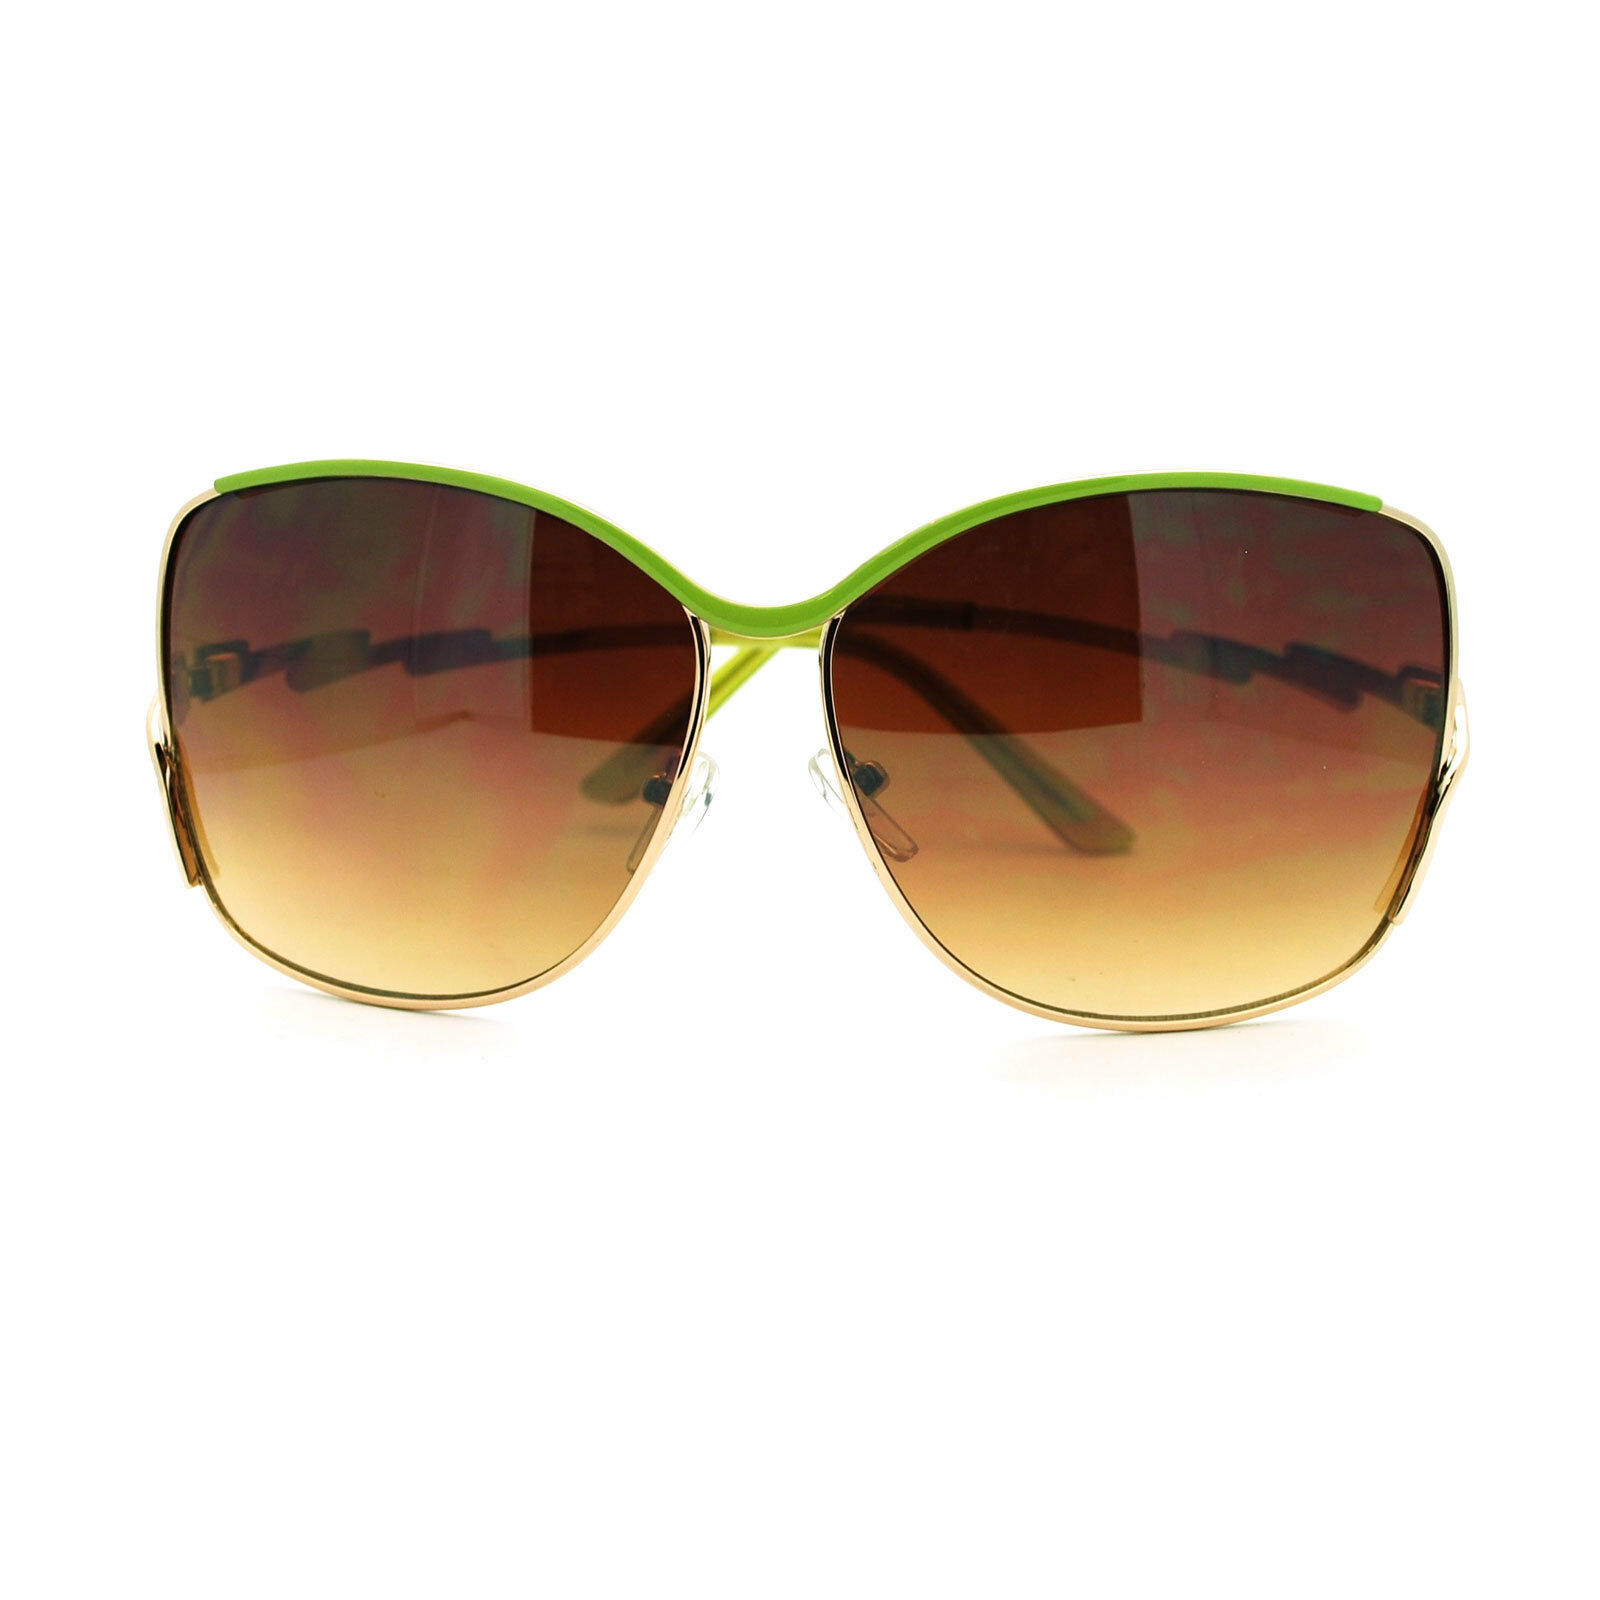 Flash Bolt Design Sunglasses Womens Metal Butterfly Frame